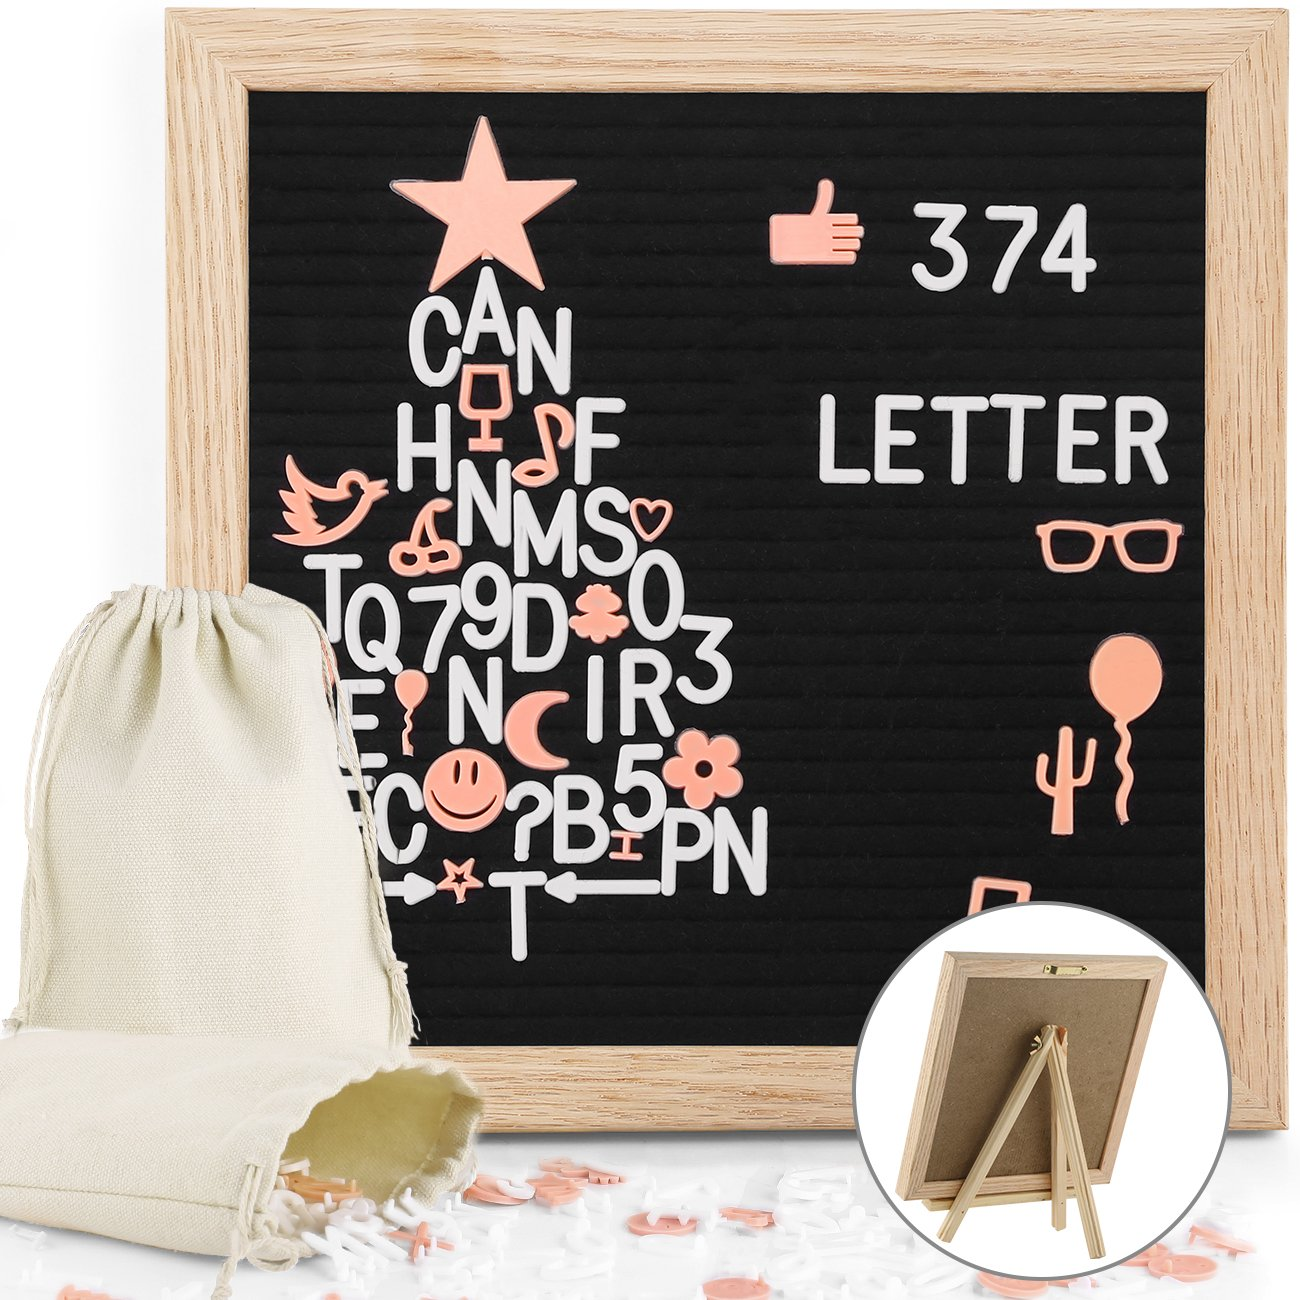 Black Felt Letter Board 10x10 Inches Rustic White Wood Farmhouse Vintage Frame, Antique Changeable Message Boards with 407 Pre-Cut Plastic Letters Cursive Words, and 2 Canvas Organizer Bags, Easyacc 12LBSMW